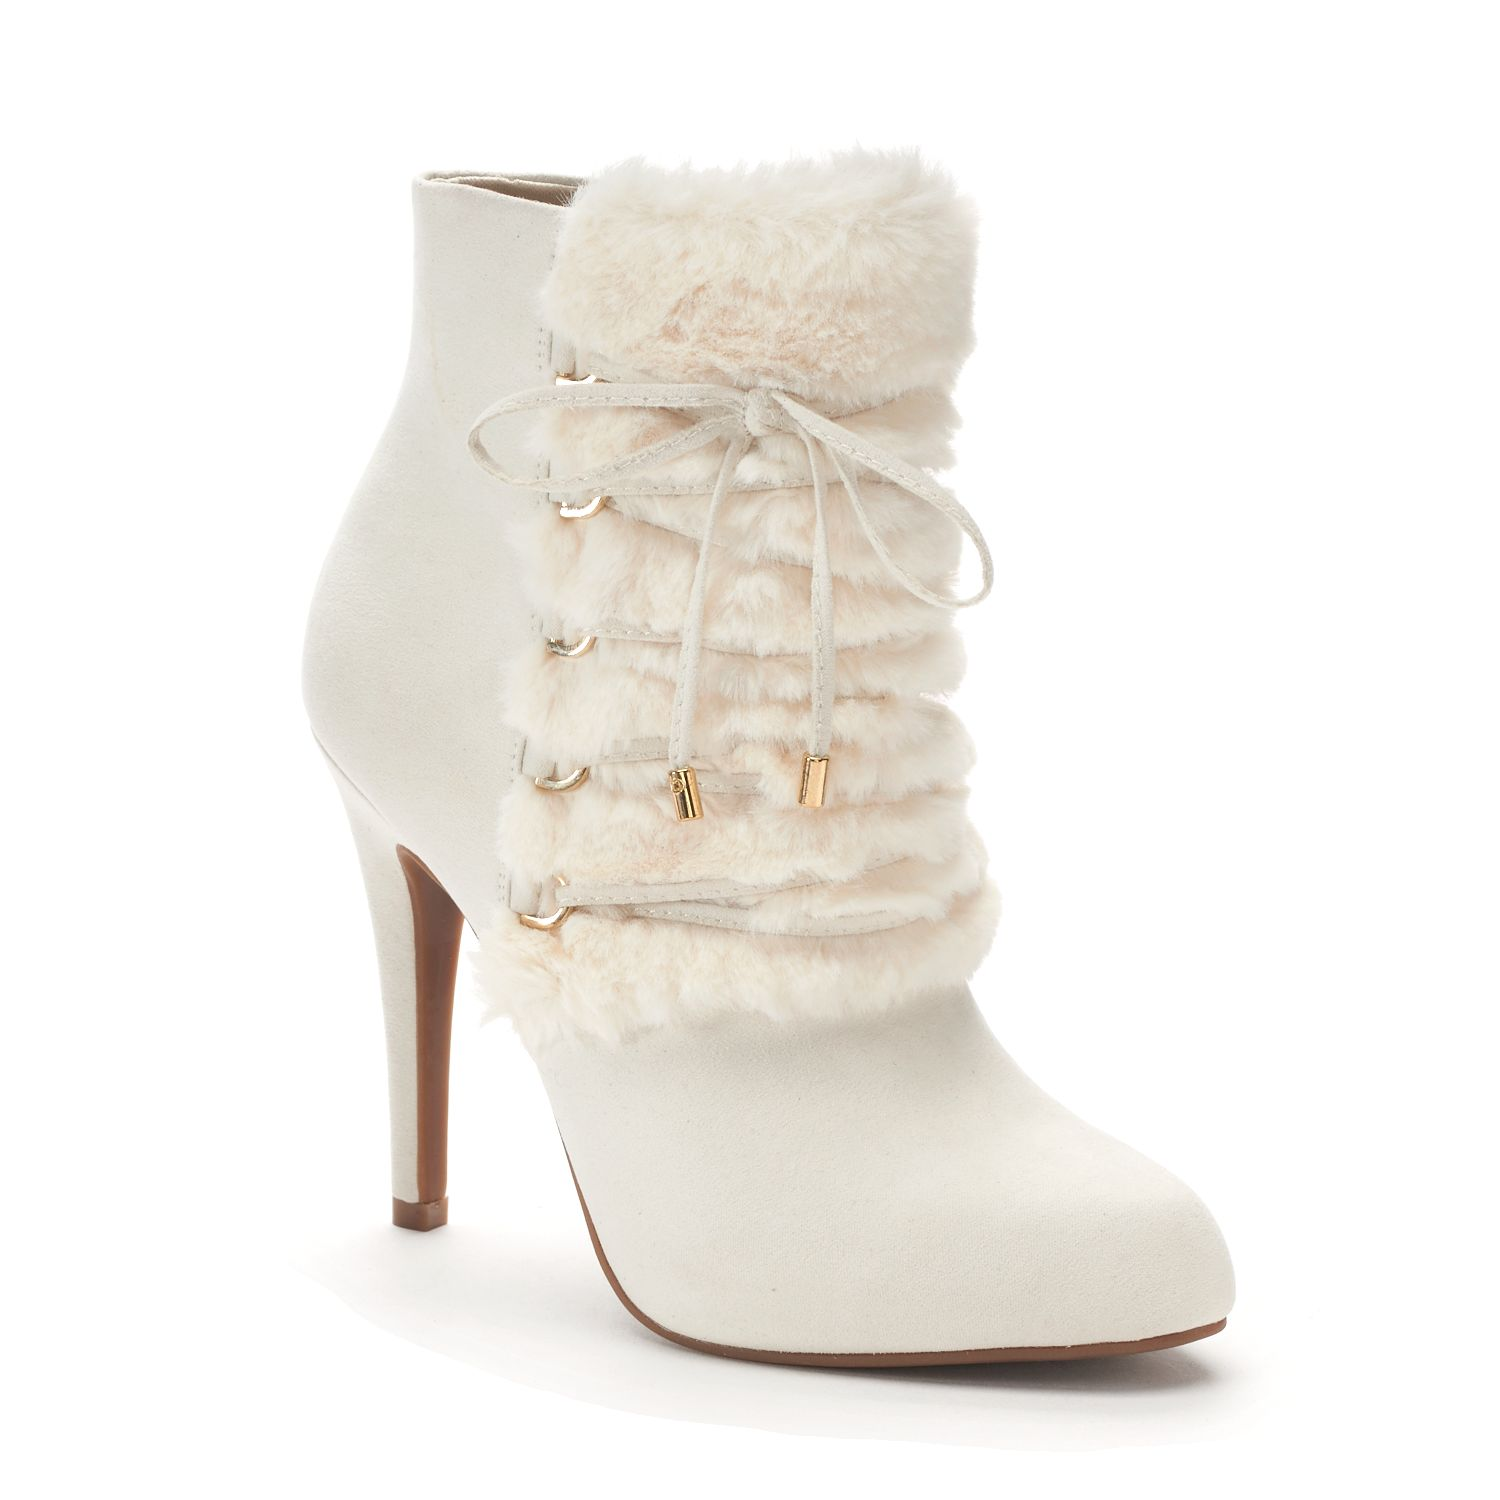 High Heel White Boots 1ibEXbTI